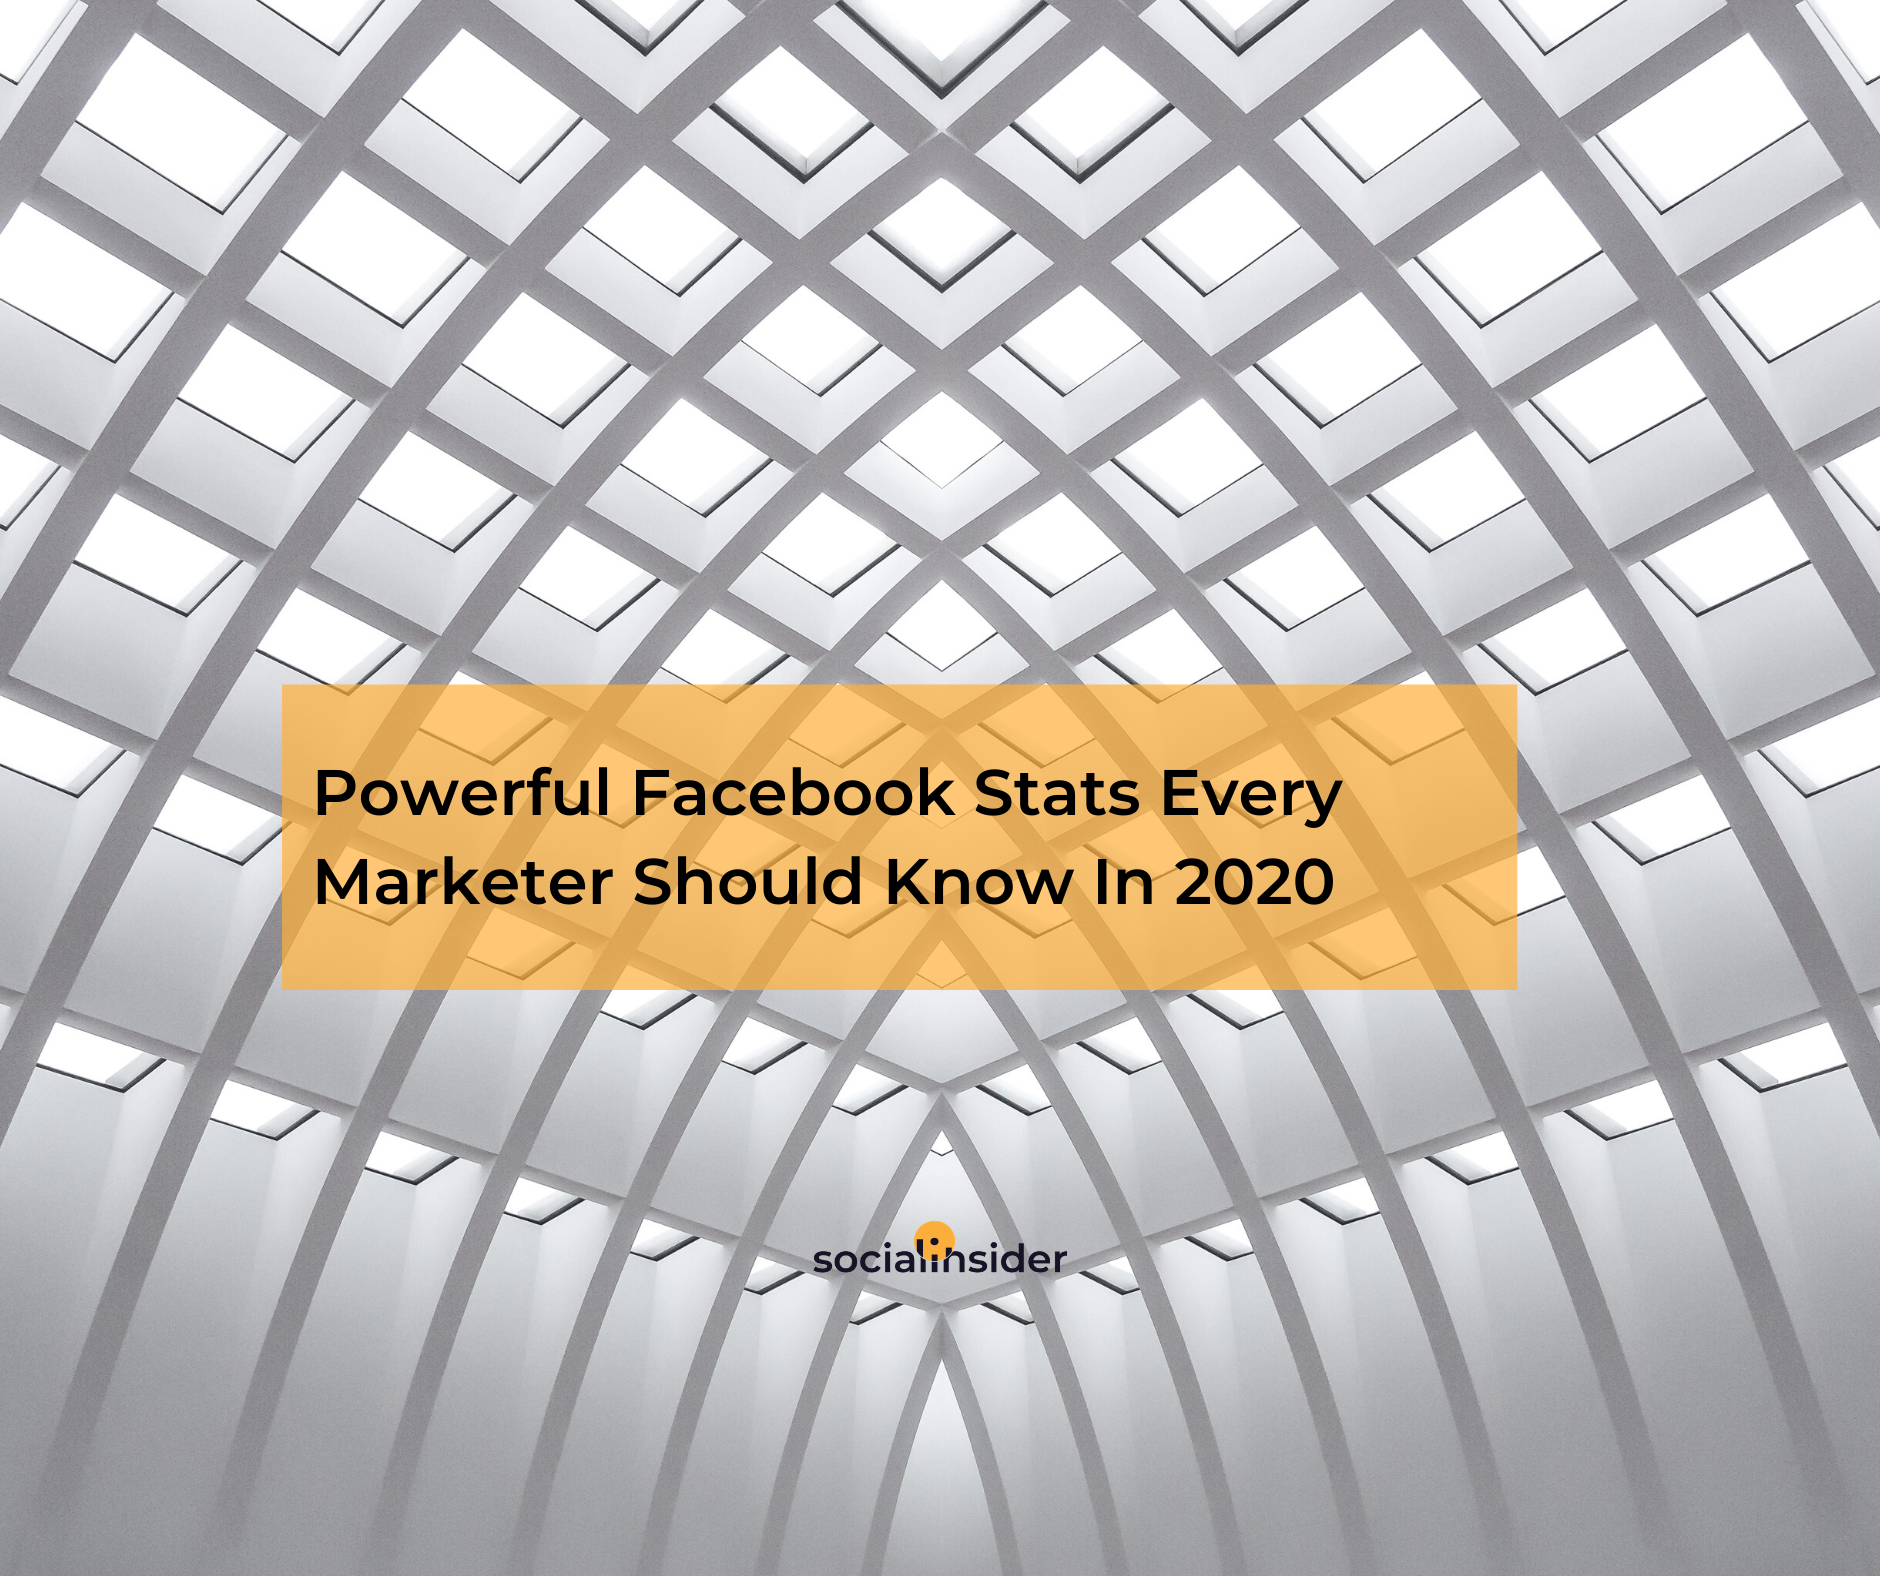 Powerful Facebook Stats Every Marketer Should Know In 2020